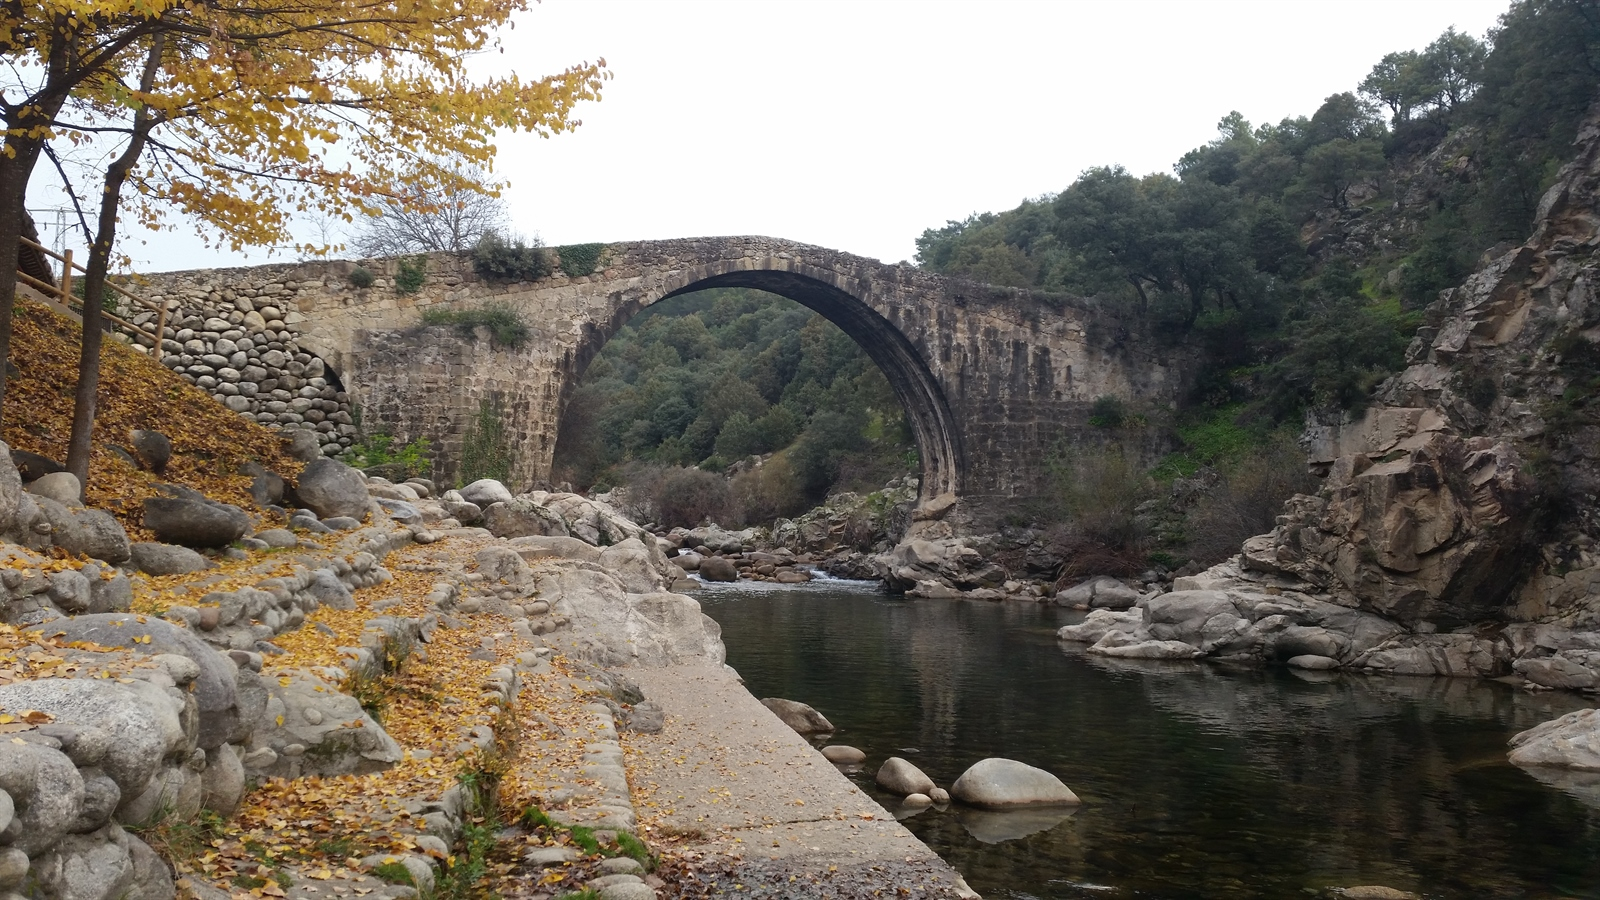 Puente romano de alardos en madrigal de la vera c ceres for Piscina natural madrigal de la vera